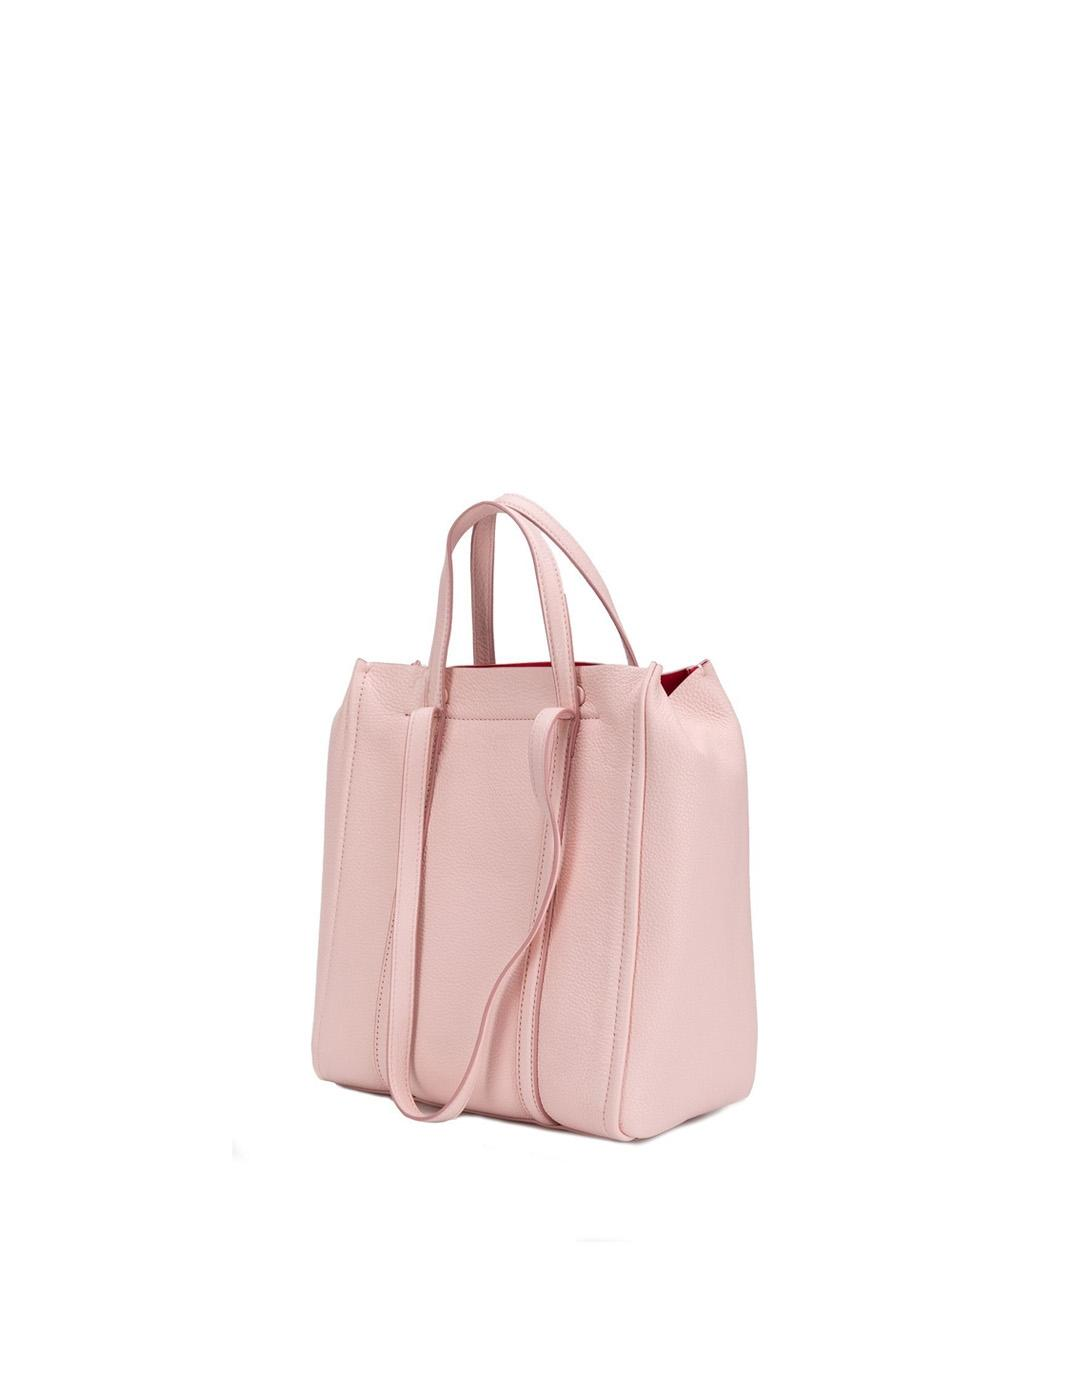 Bolso Marc Jacobs rosa The Tag Tote 27